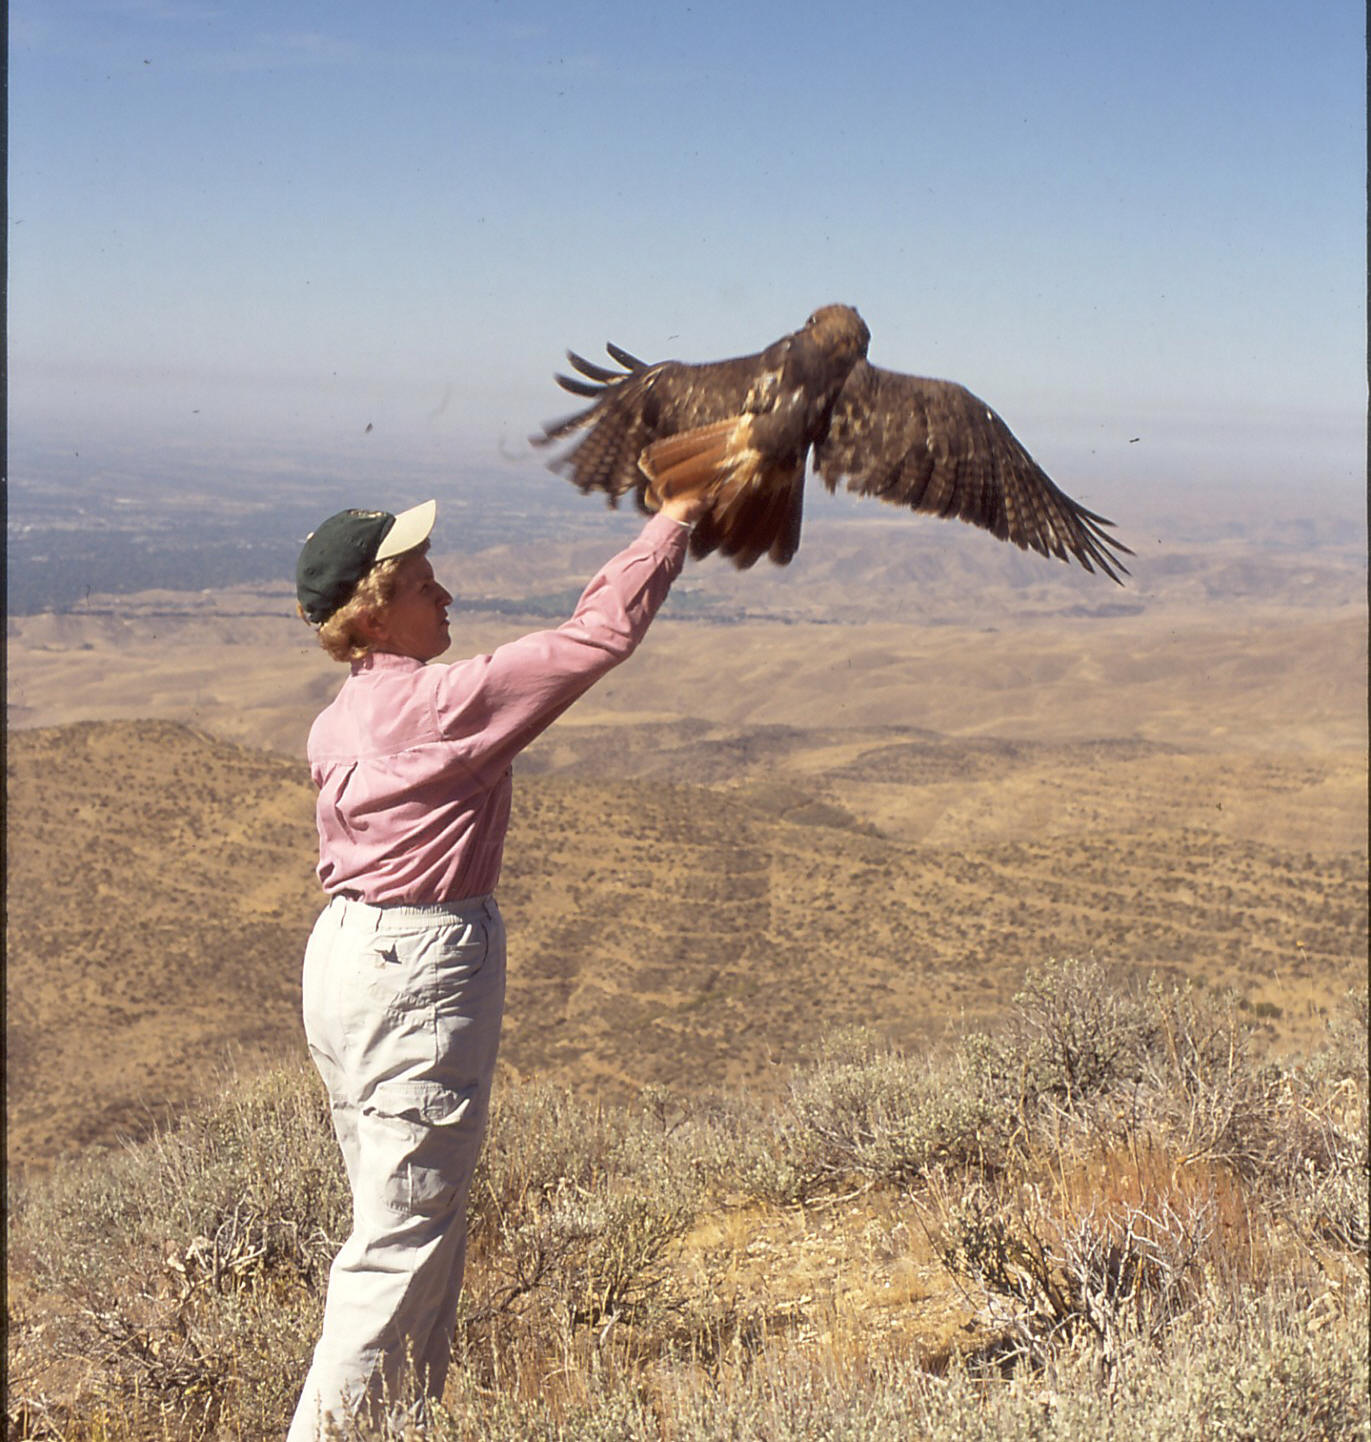 Carol reaches her arm out as a hawk takes flight from her hand